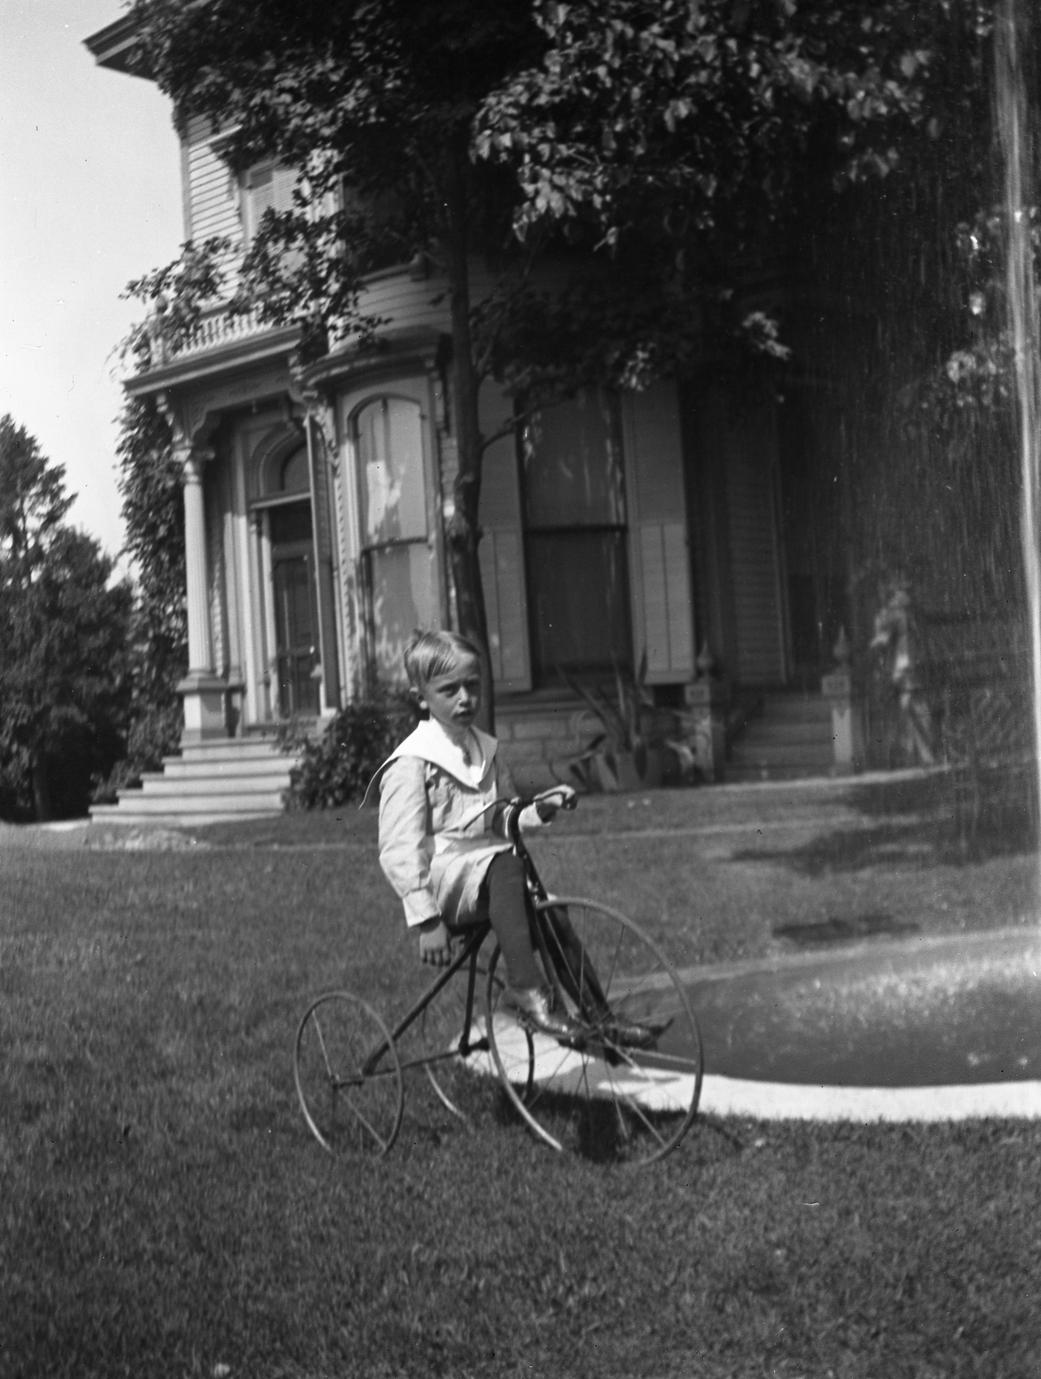 Frederic Leopold riding tricycle in front of Burlington house